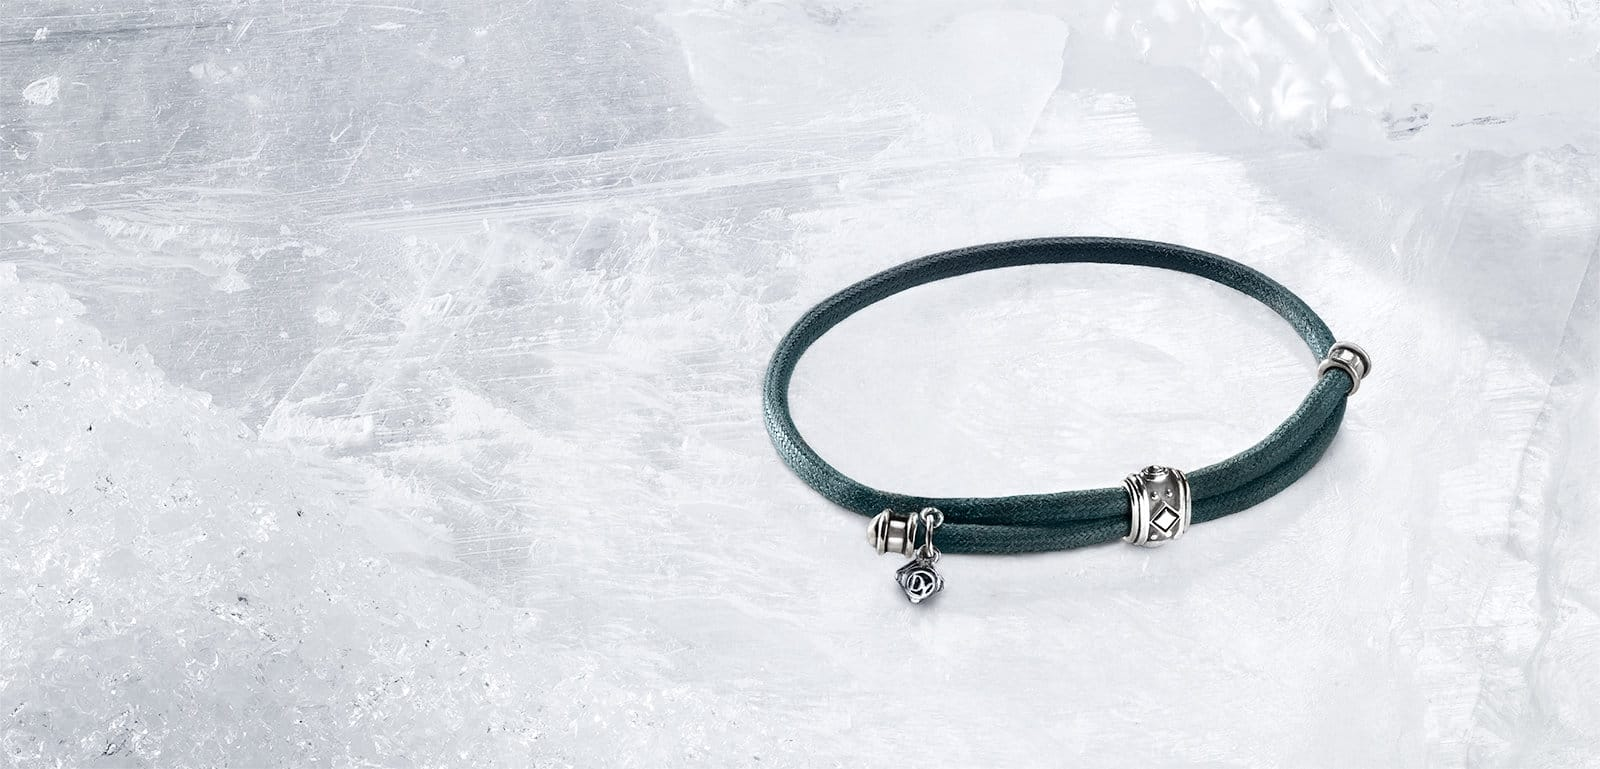 A David Yurman Renaissance waxed-cord bracelet in teal with chrome-plated details shot on a backdrop of ice.